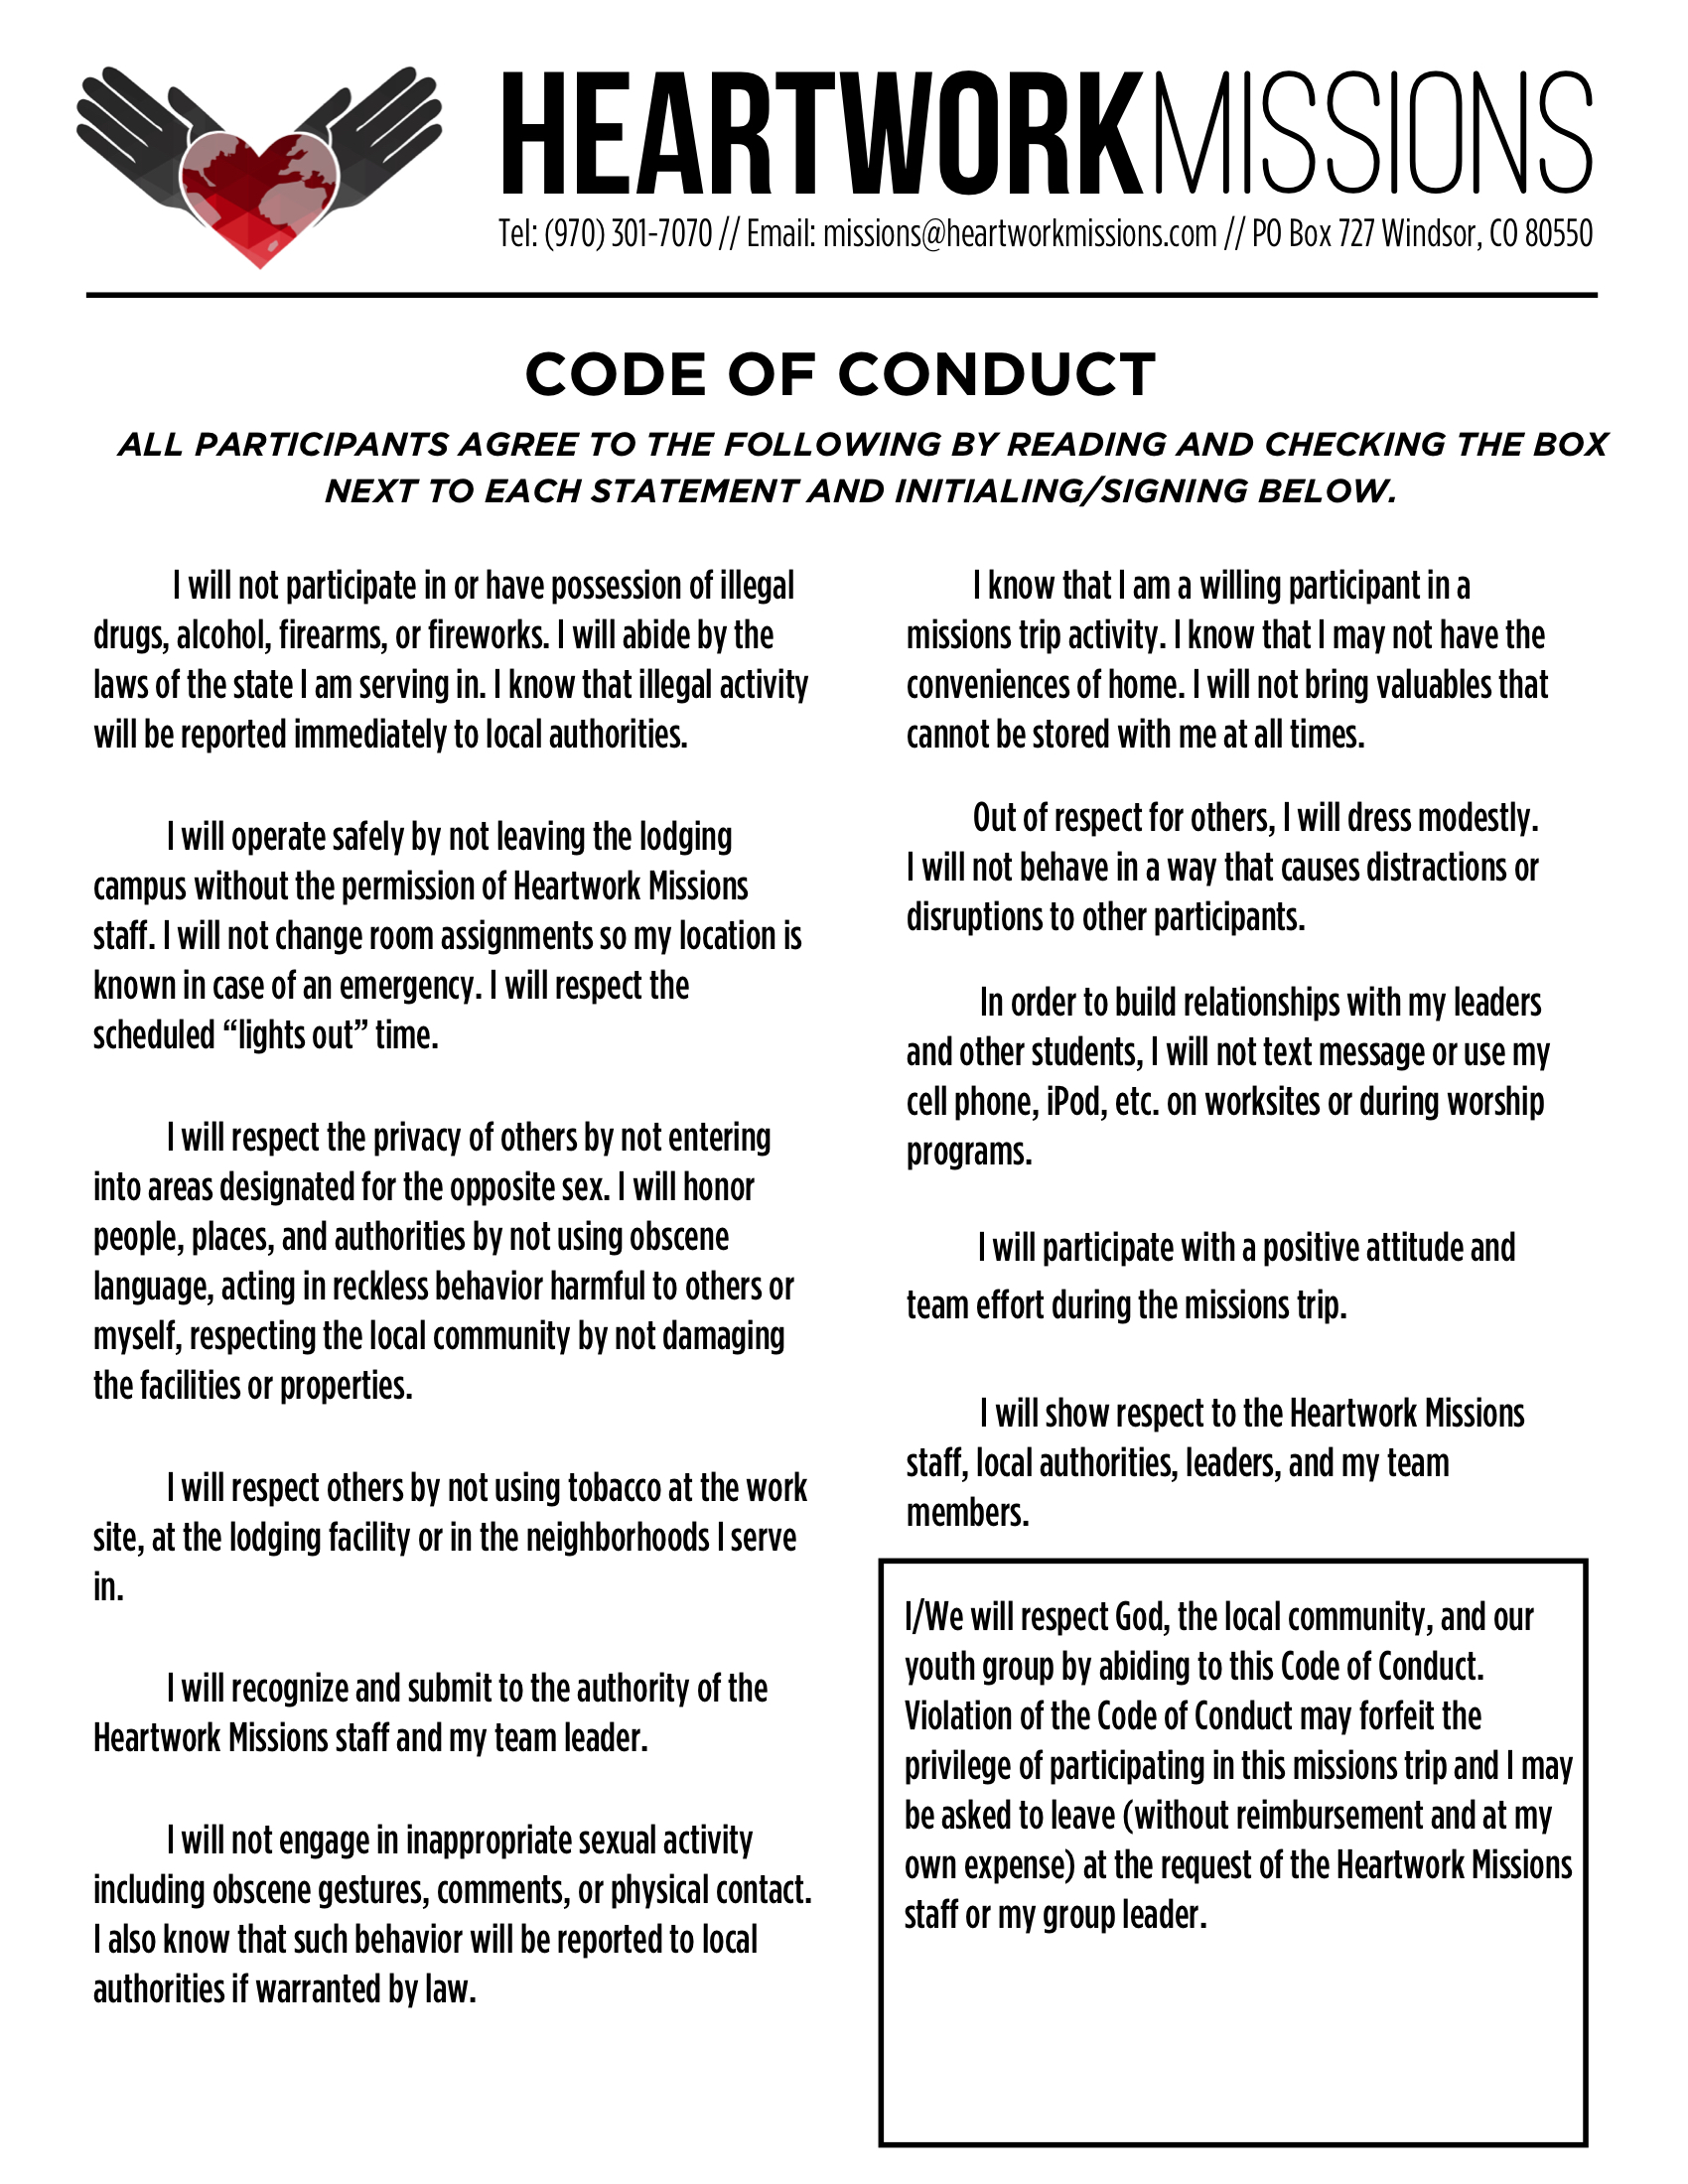 City Church Adult Code of Conduct and Release.jpg